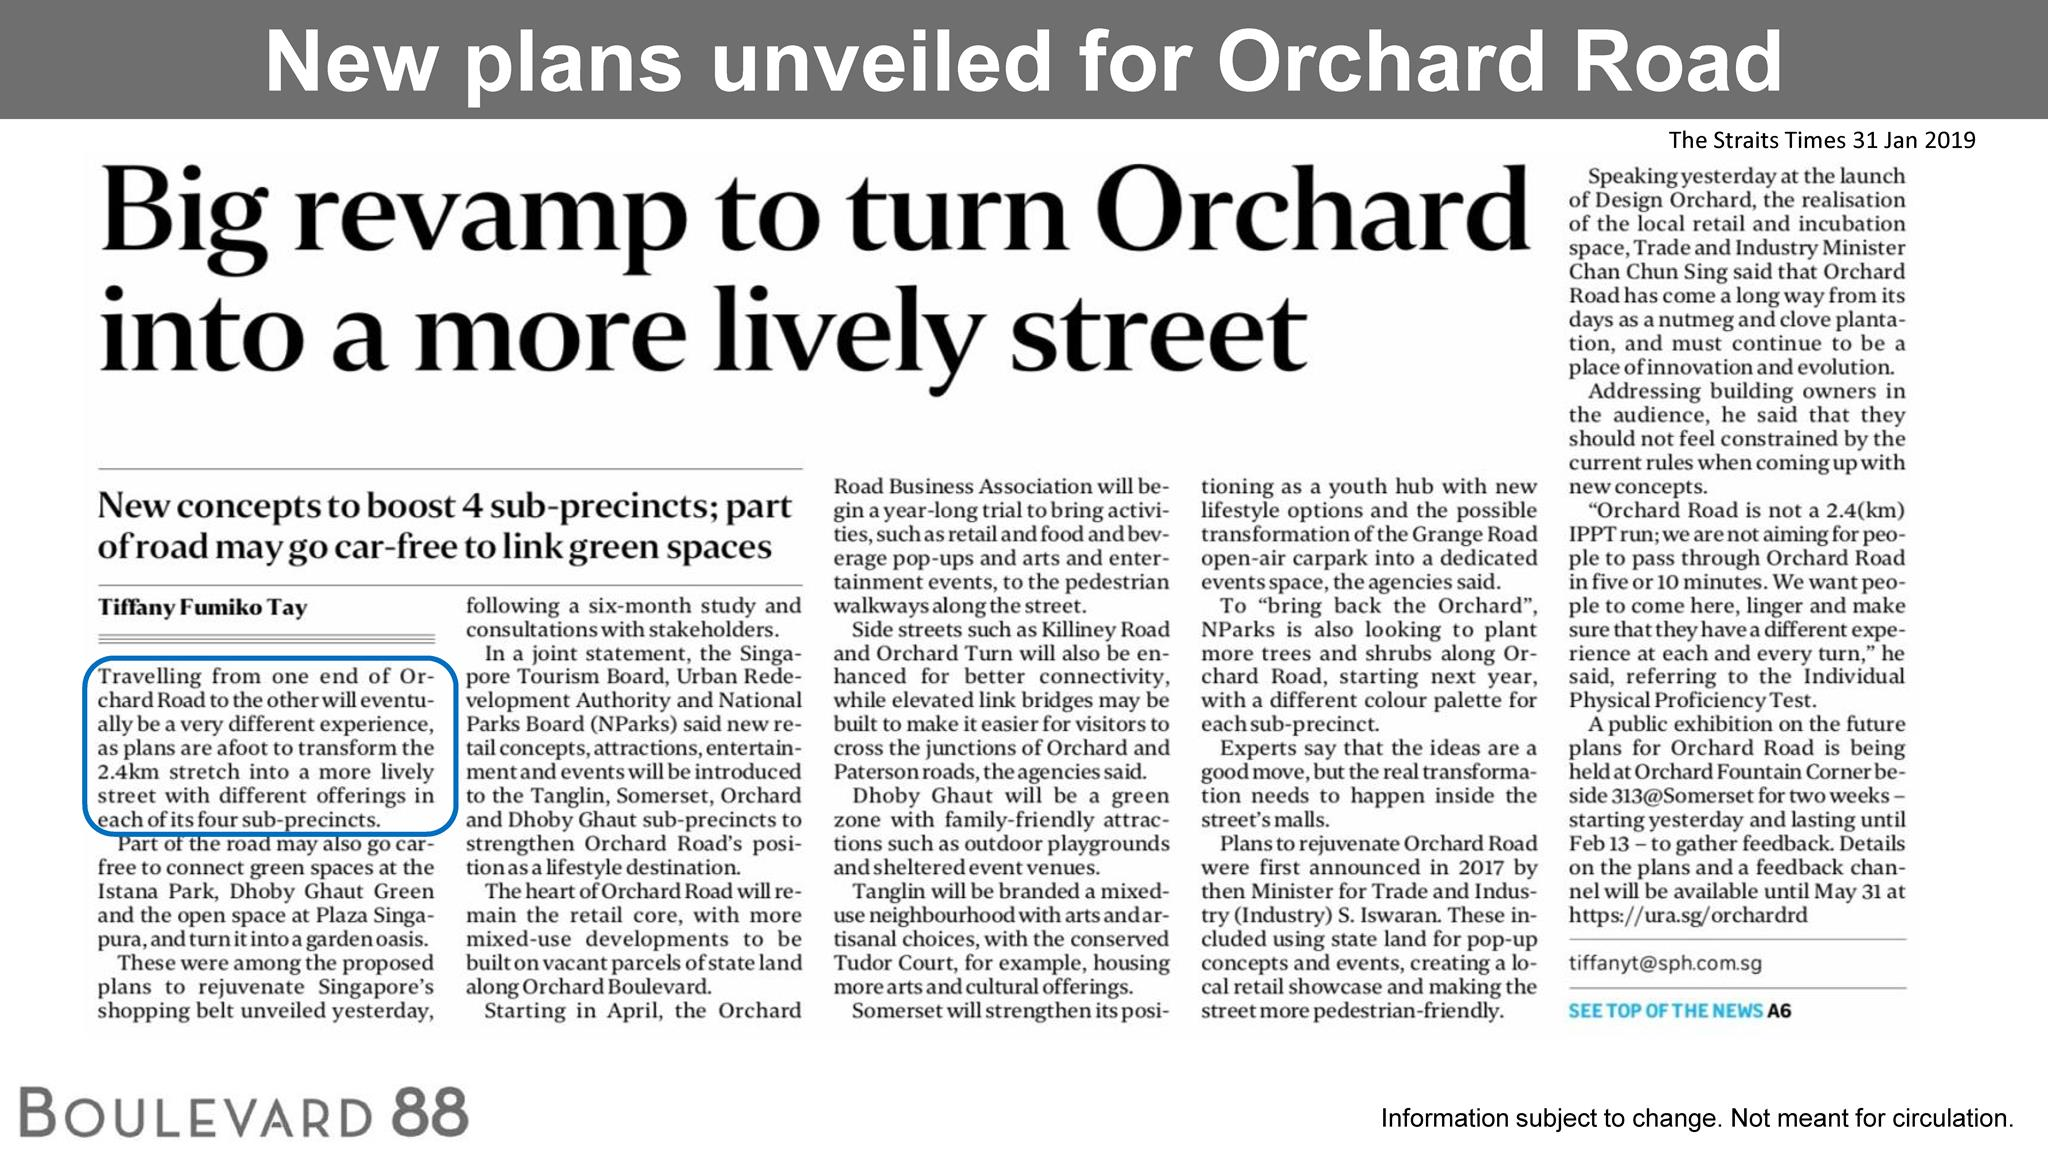 Big revamp to turn Orchard into a more lively street